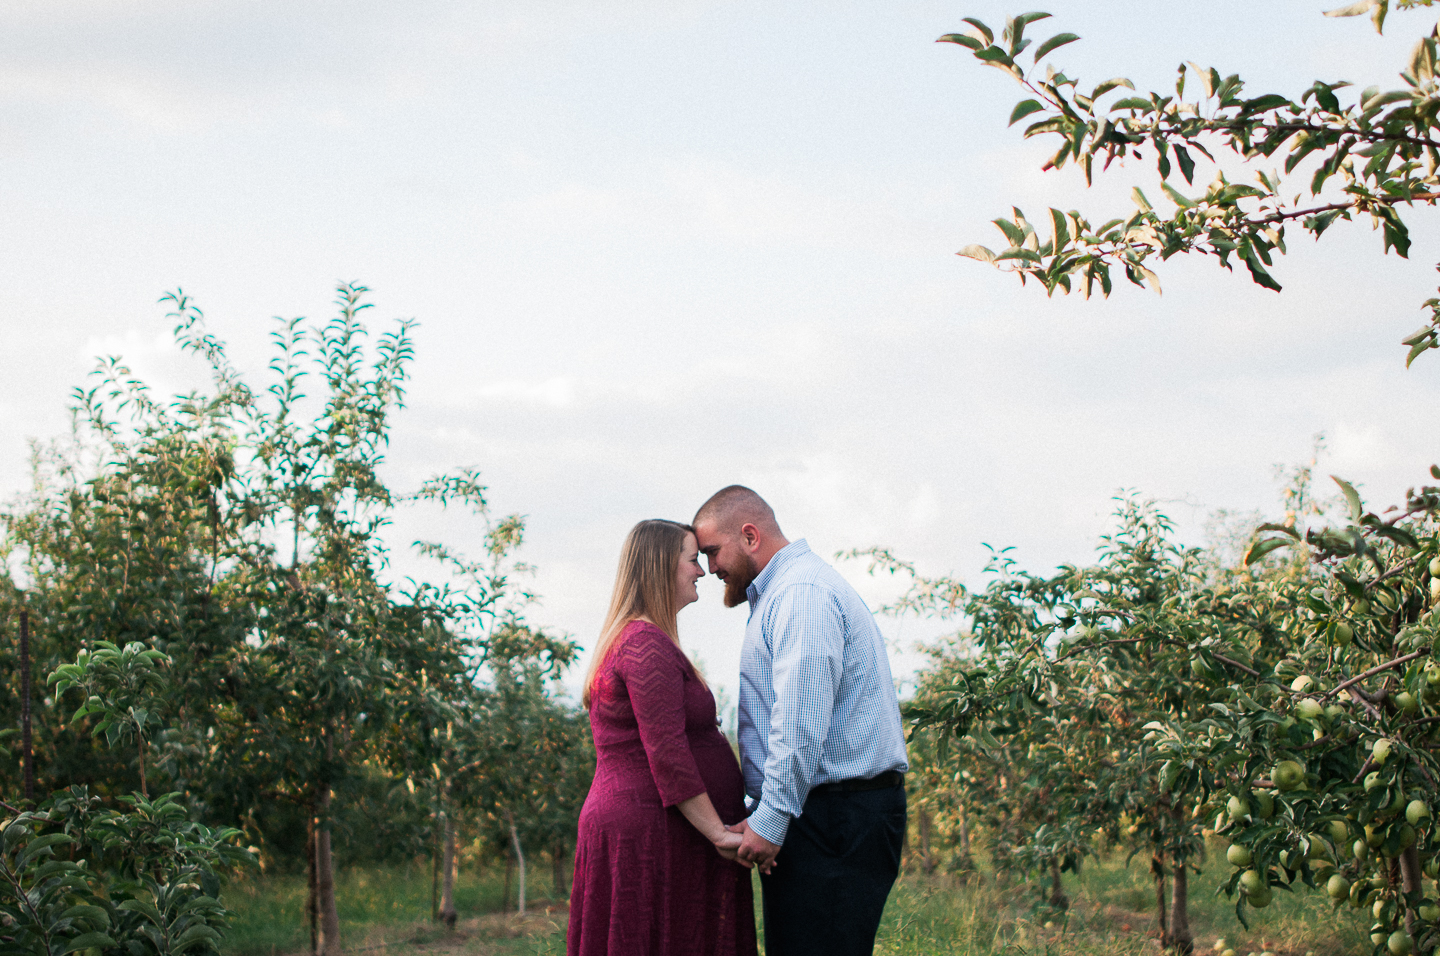 Maternity Pictures, Baby Bump, Outdoor Maternity Pictures